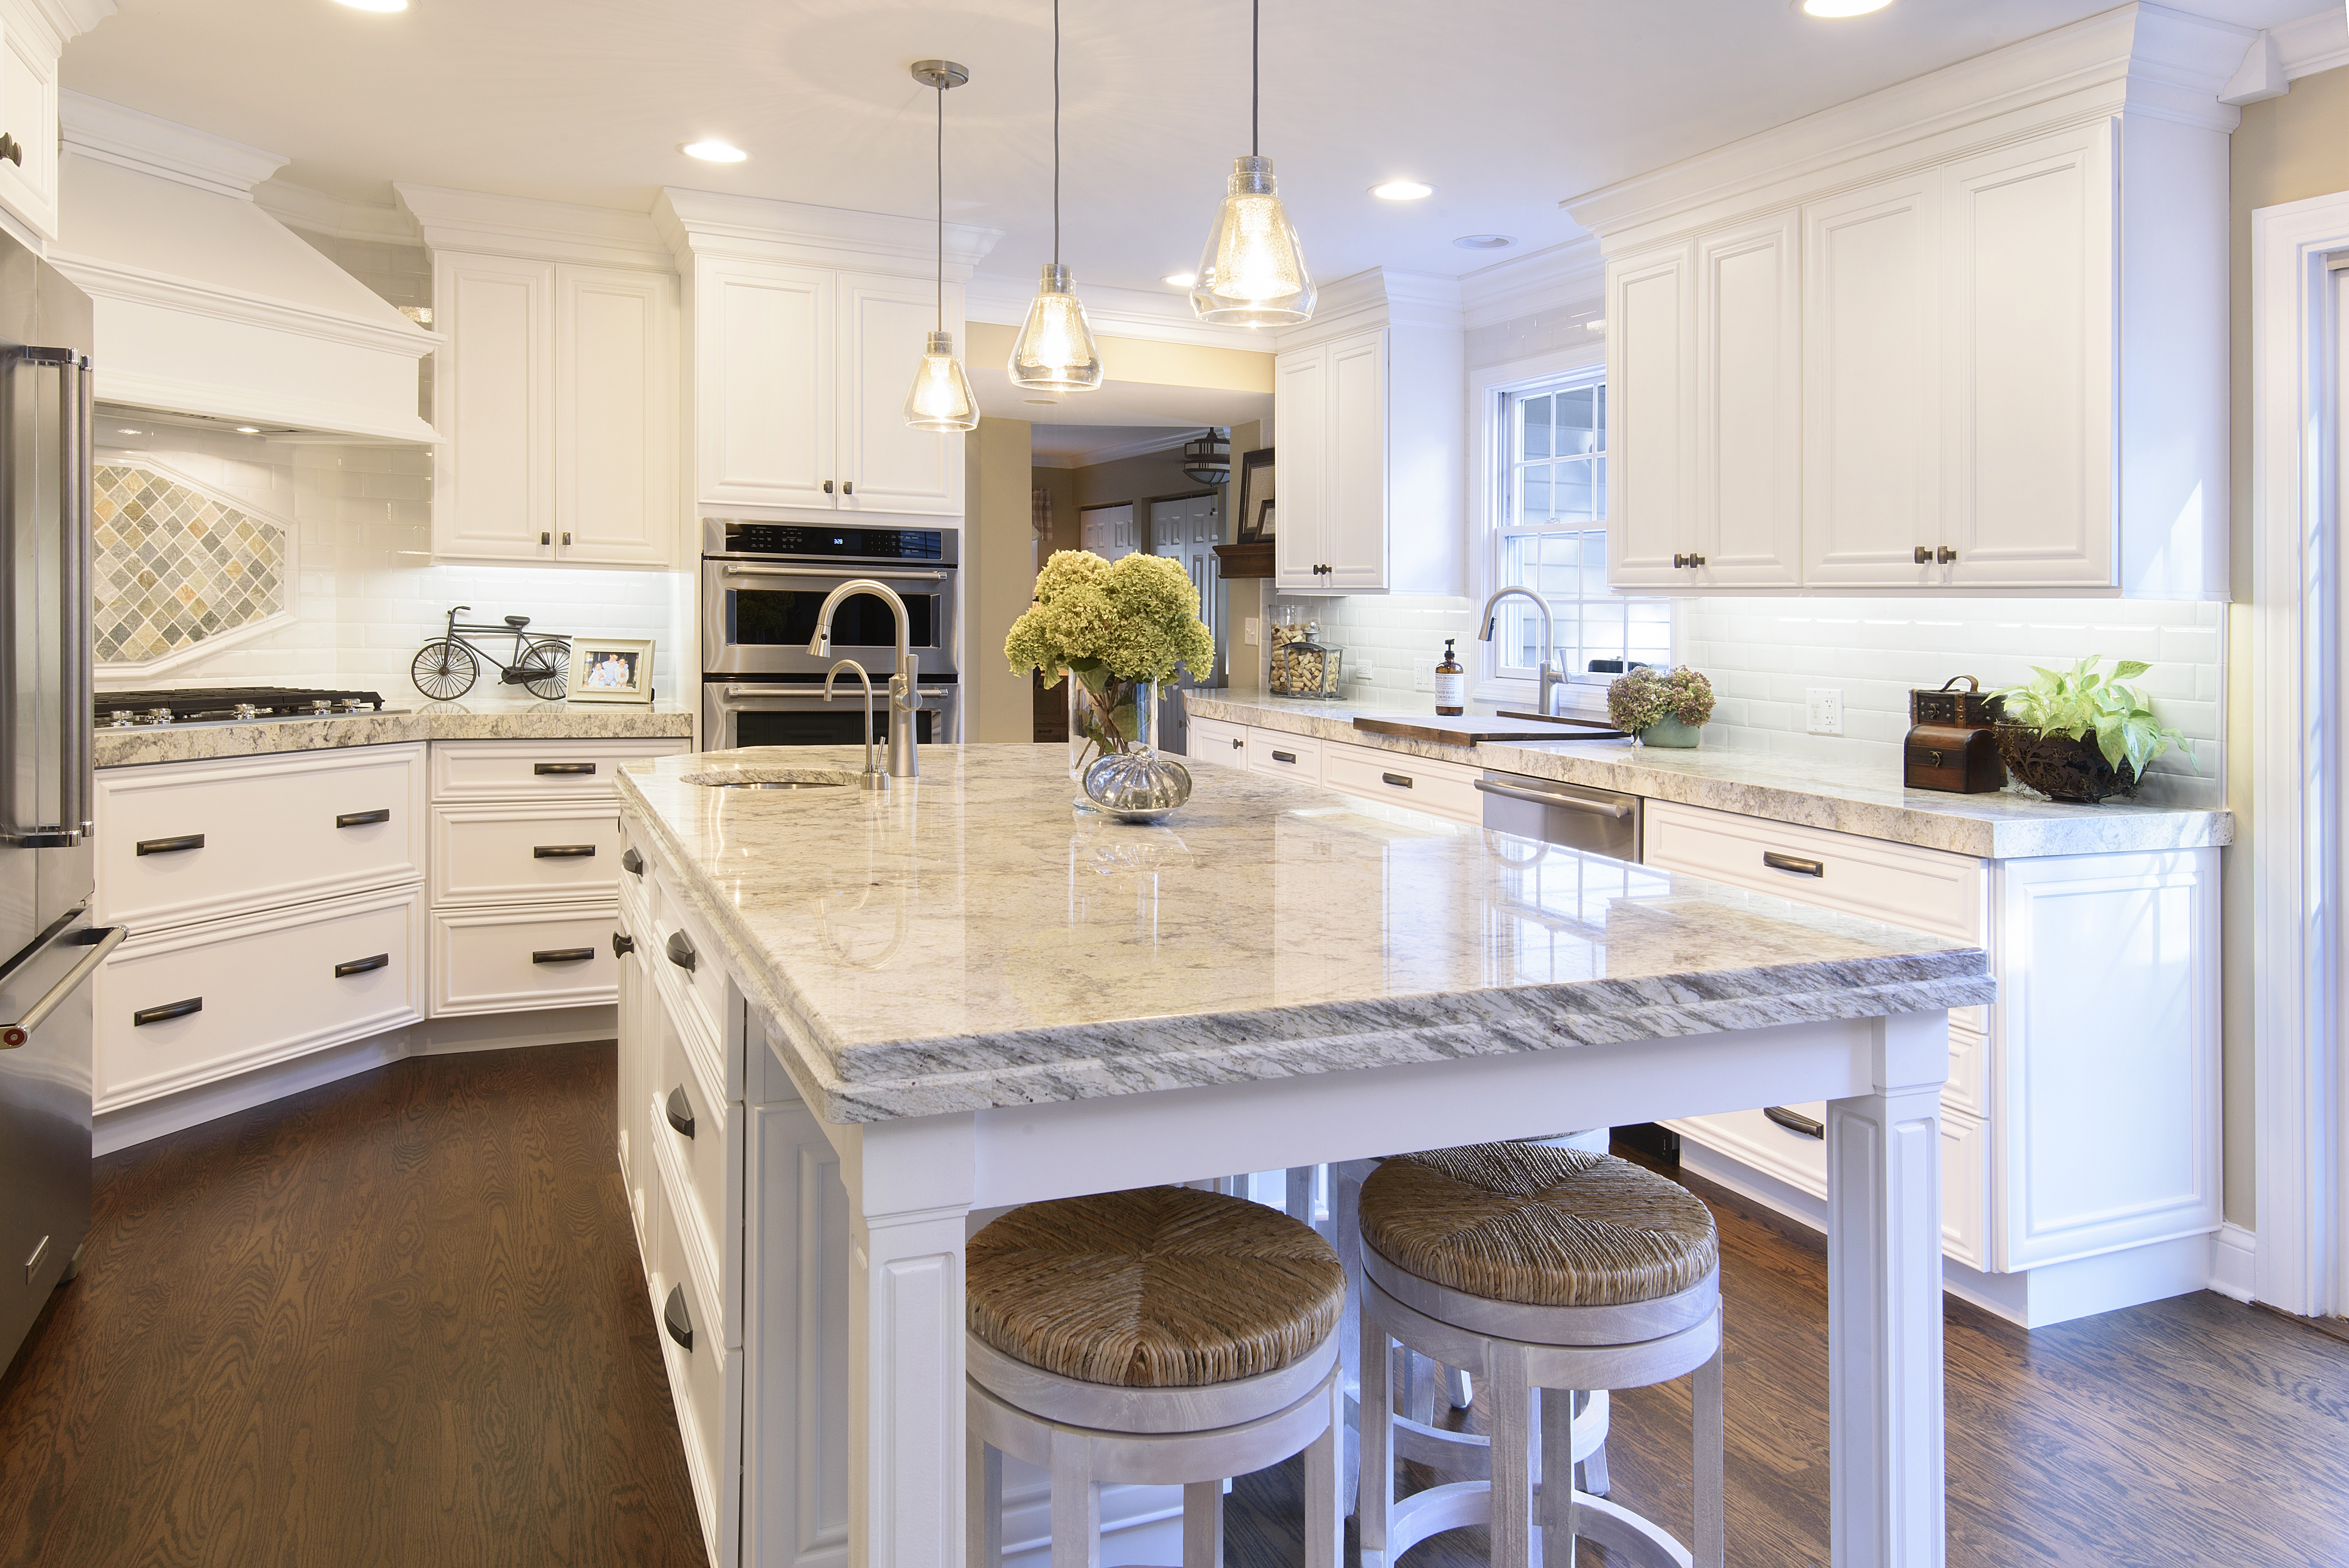 Wheaton Home Remodeling - Additions, Kitchens, Baths, Basements ...